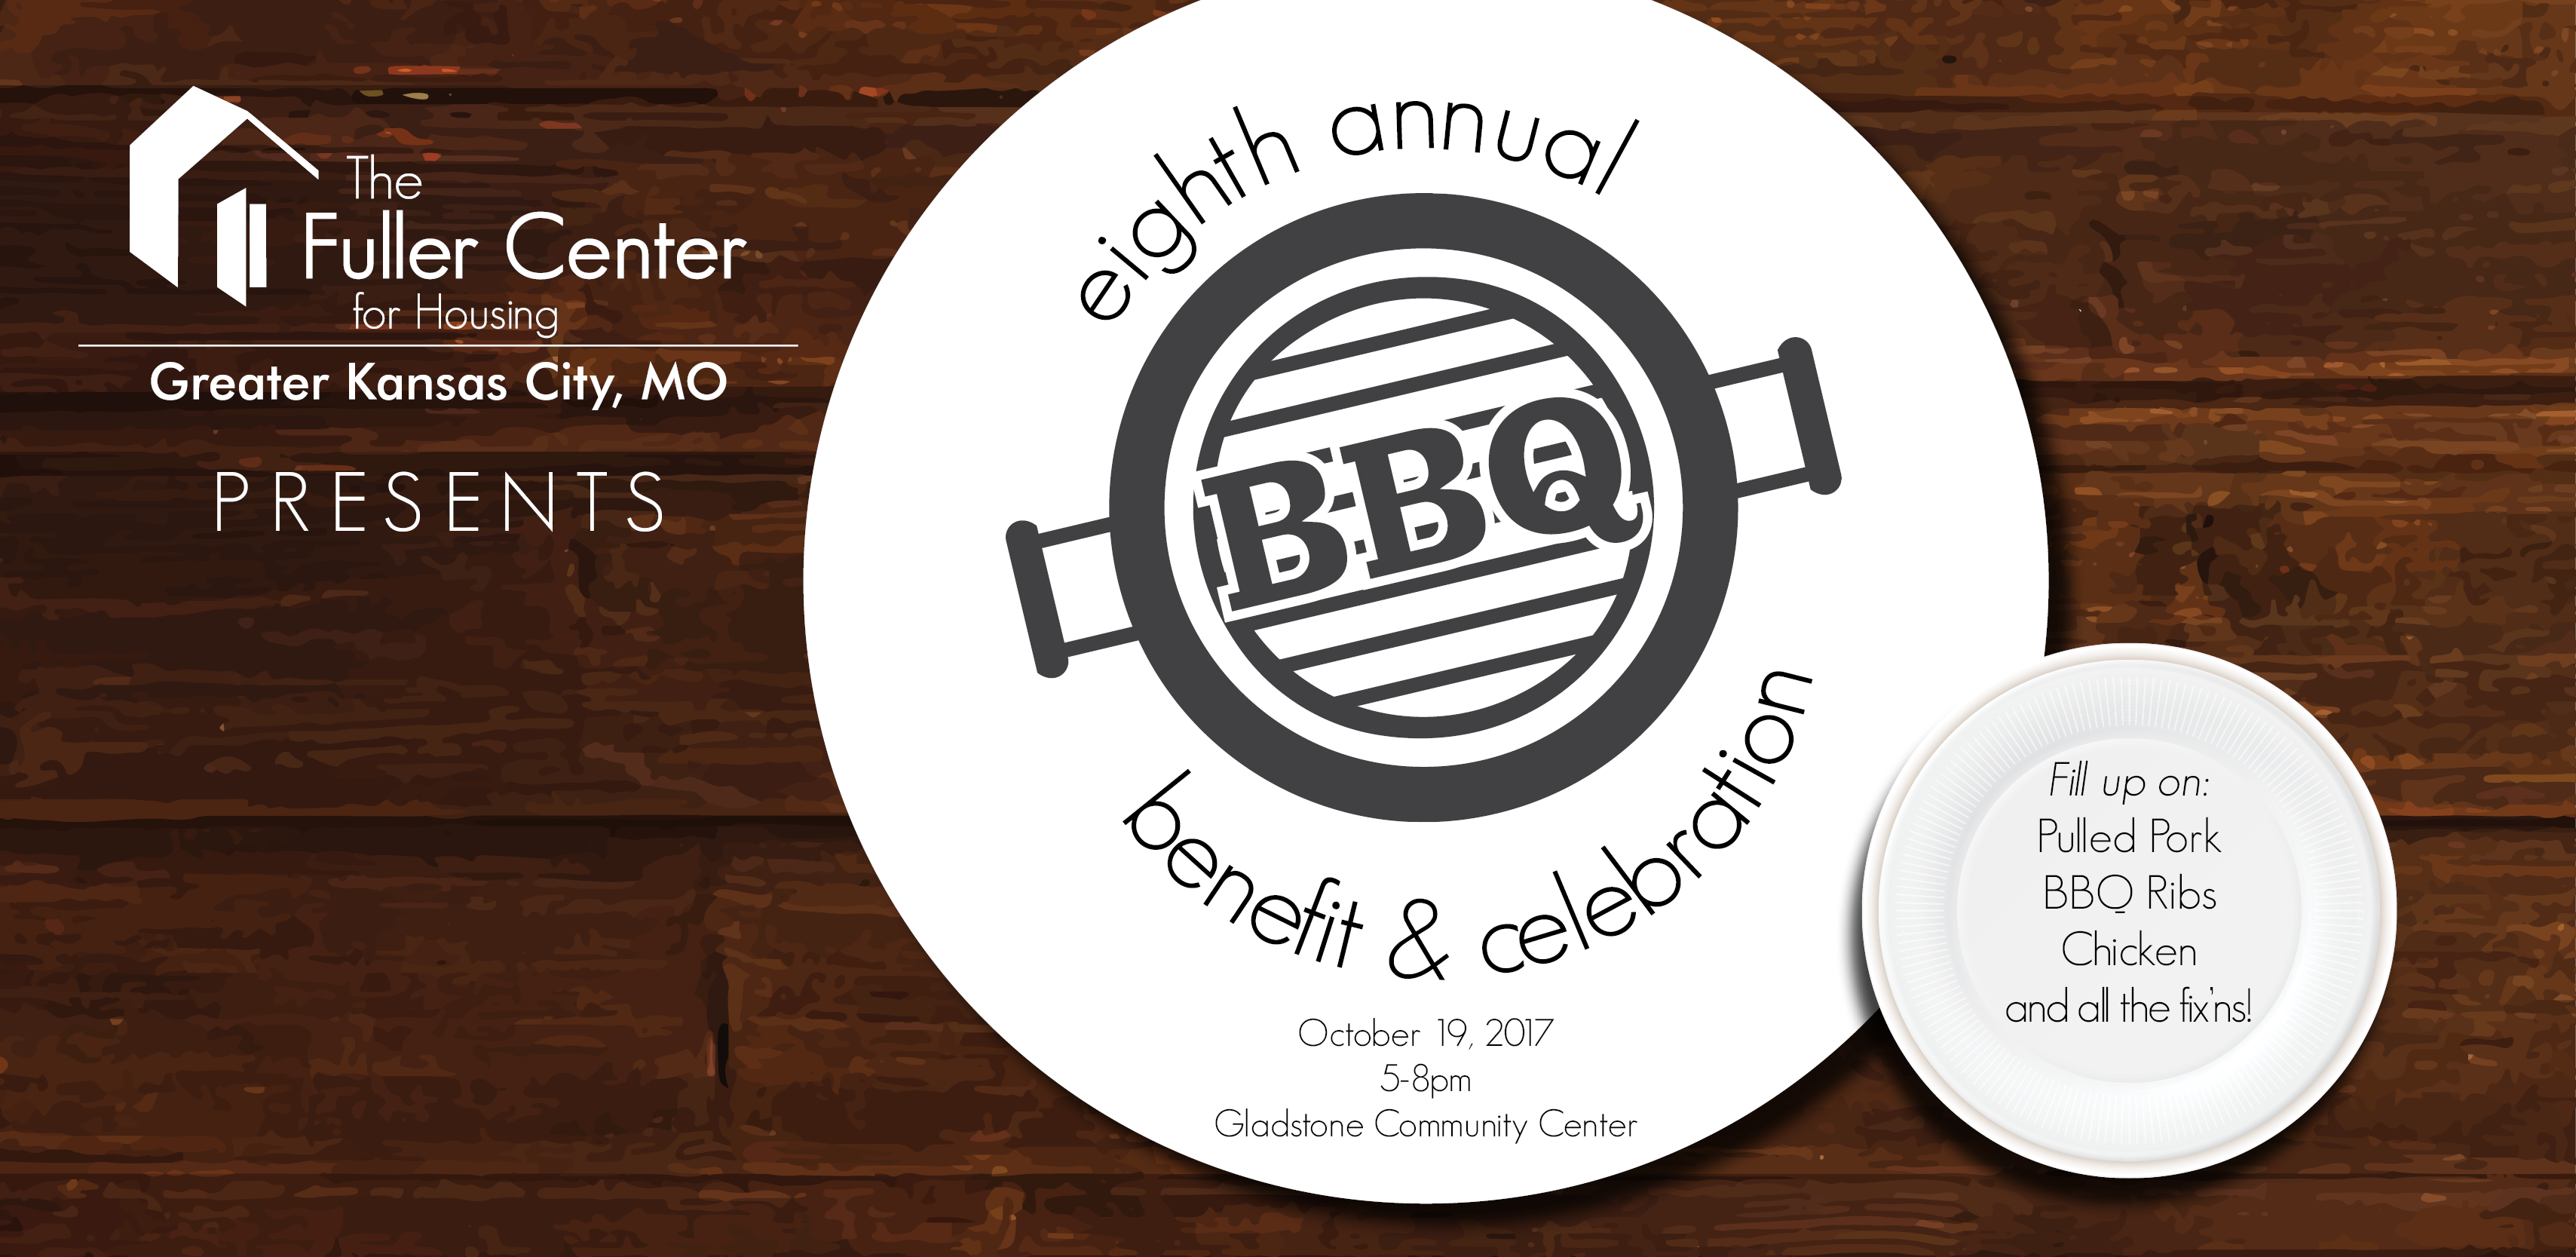 Graphic: Fuller Center for Housing of Greater Kansas City presents 8th Annual BBQ, Benefit & Celebration | fullercenterkc.org